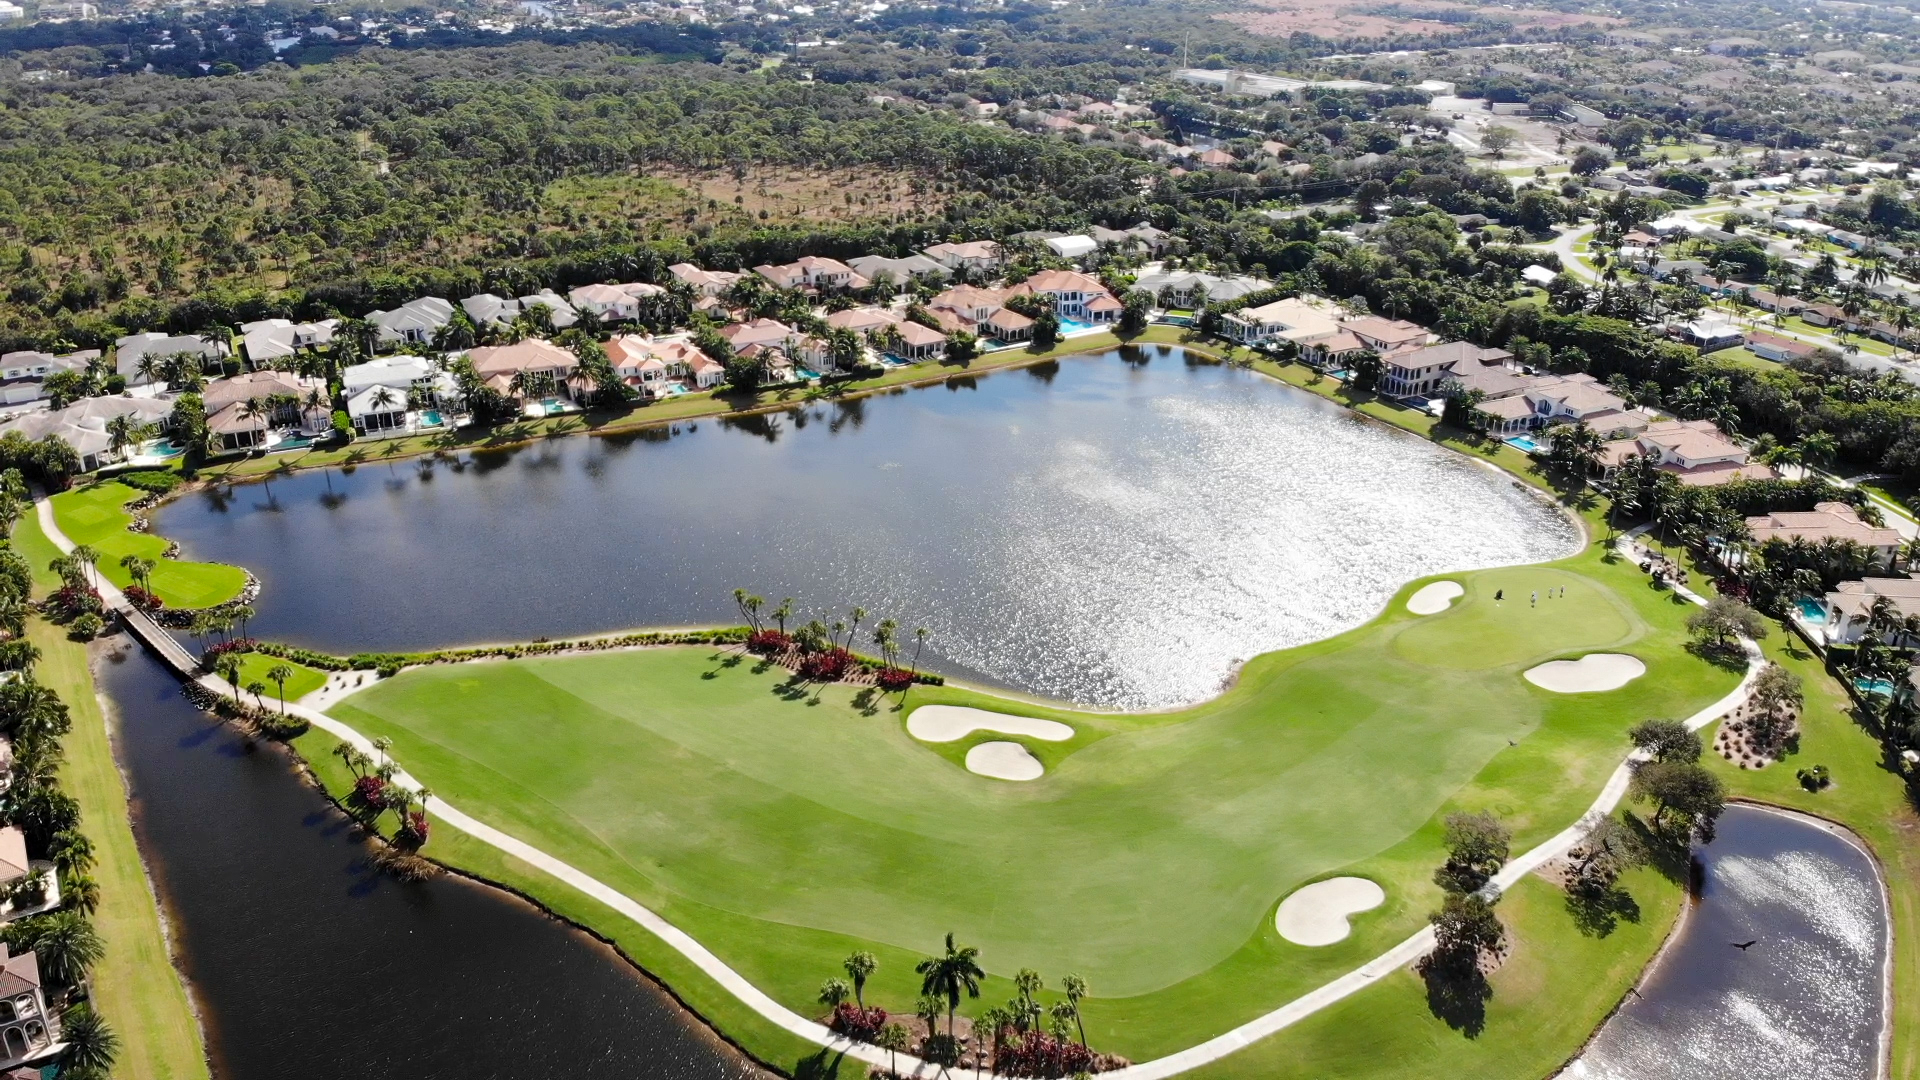 aerial photo of Frenchman's Reserve by DVK Designs Drone Services